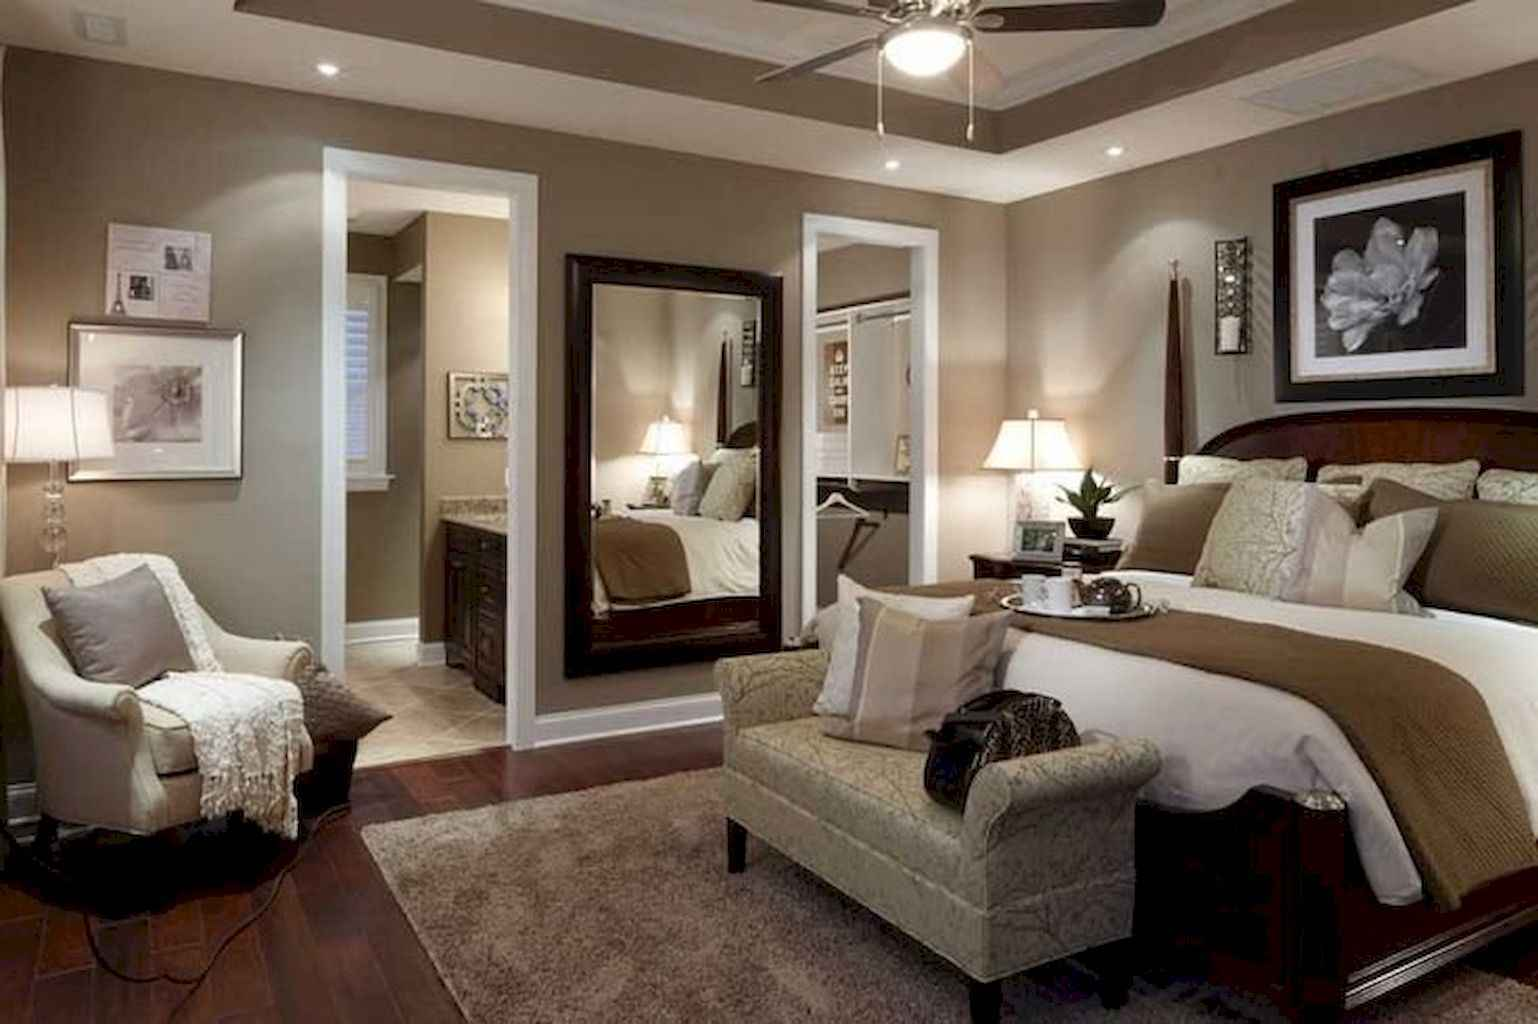 Awesome bedroom decoration ideas (49)